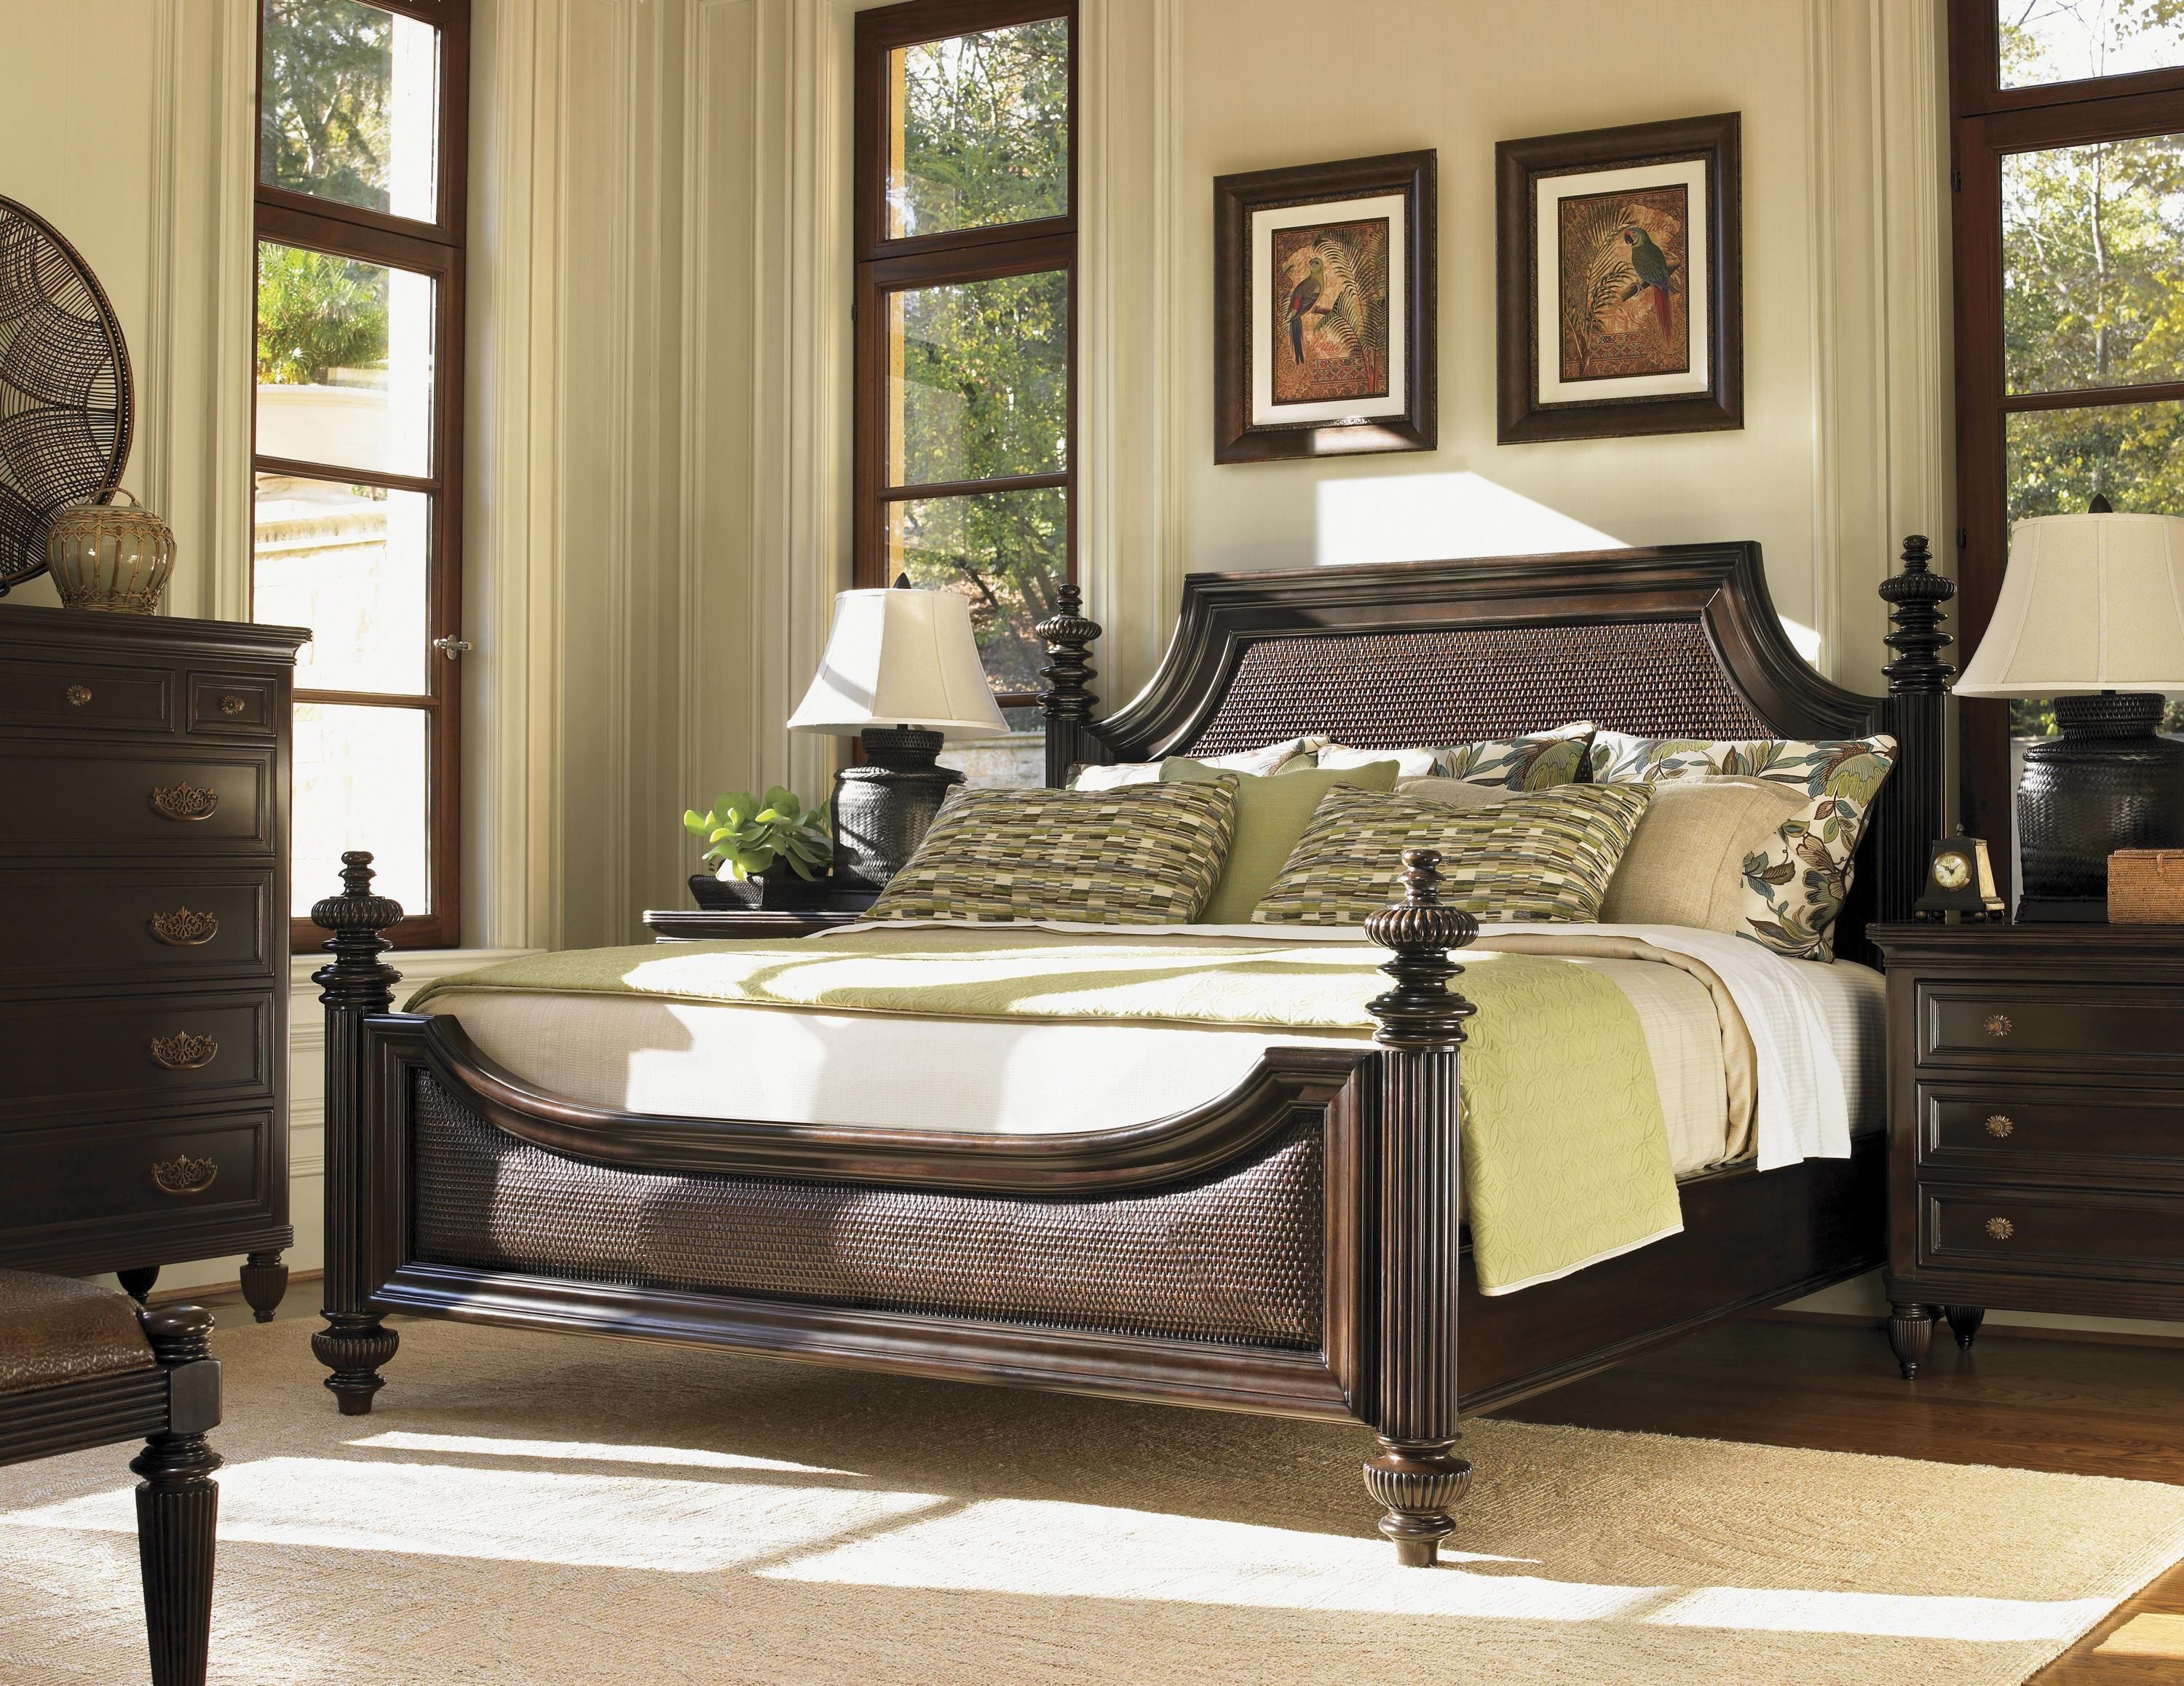 Tommy Bahama Bedroom Furniture Elegant Royal Kahala Leather by tommy Bahama Home Hudson S